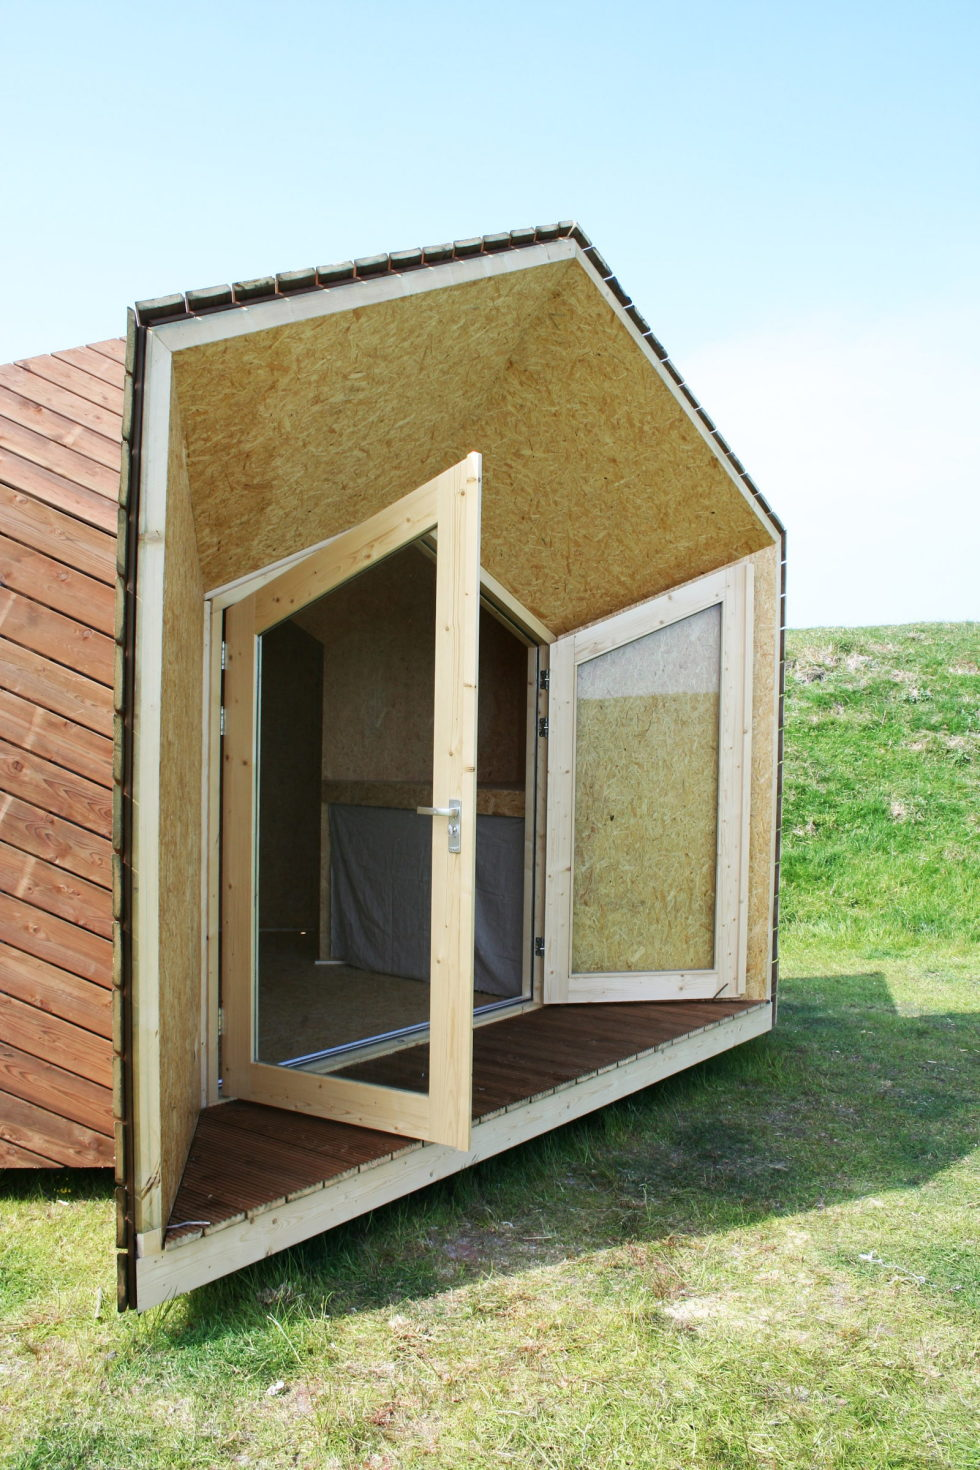 Modular Hermit Houses From The Cloud Collective Company 9